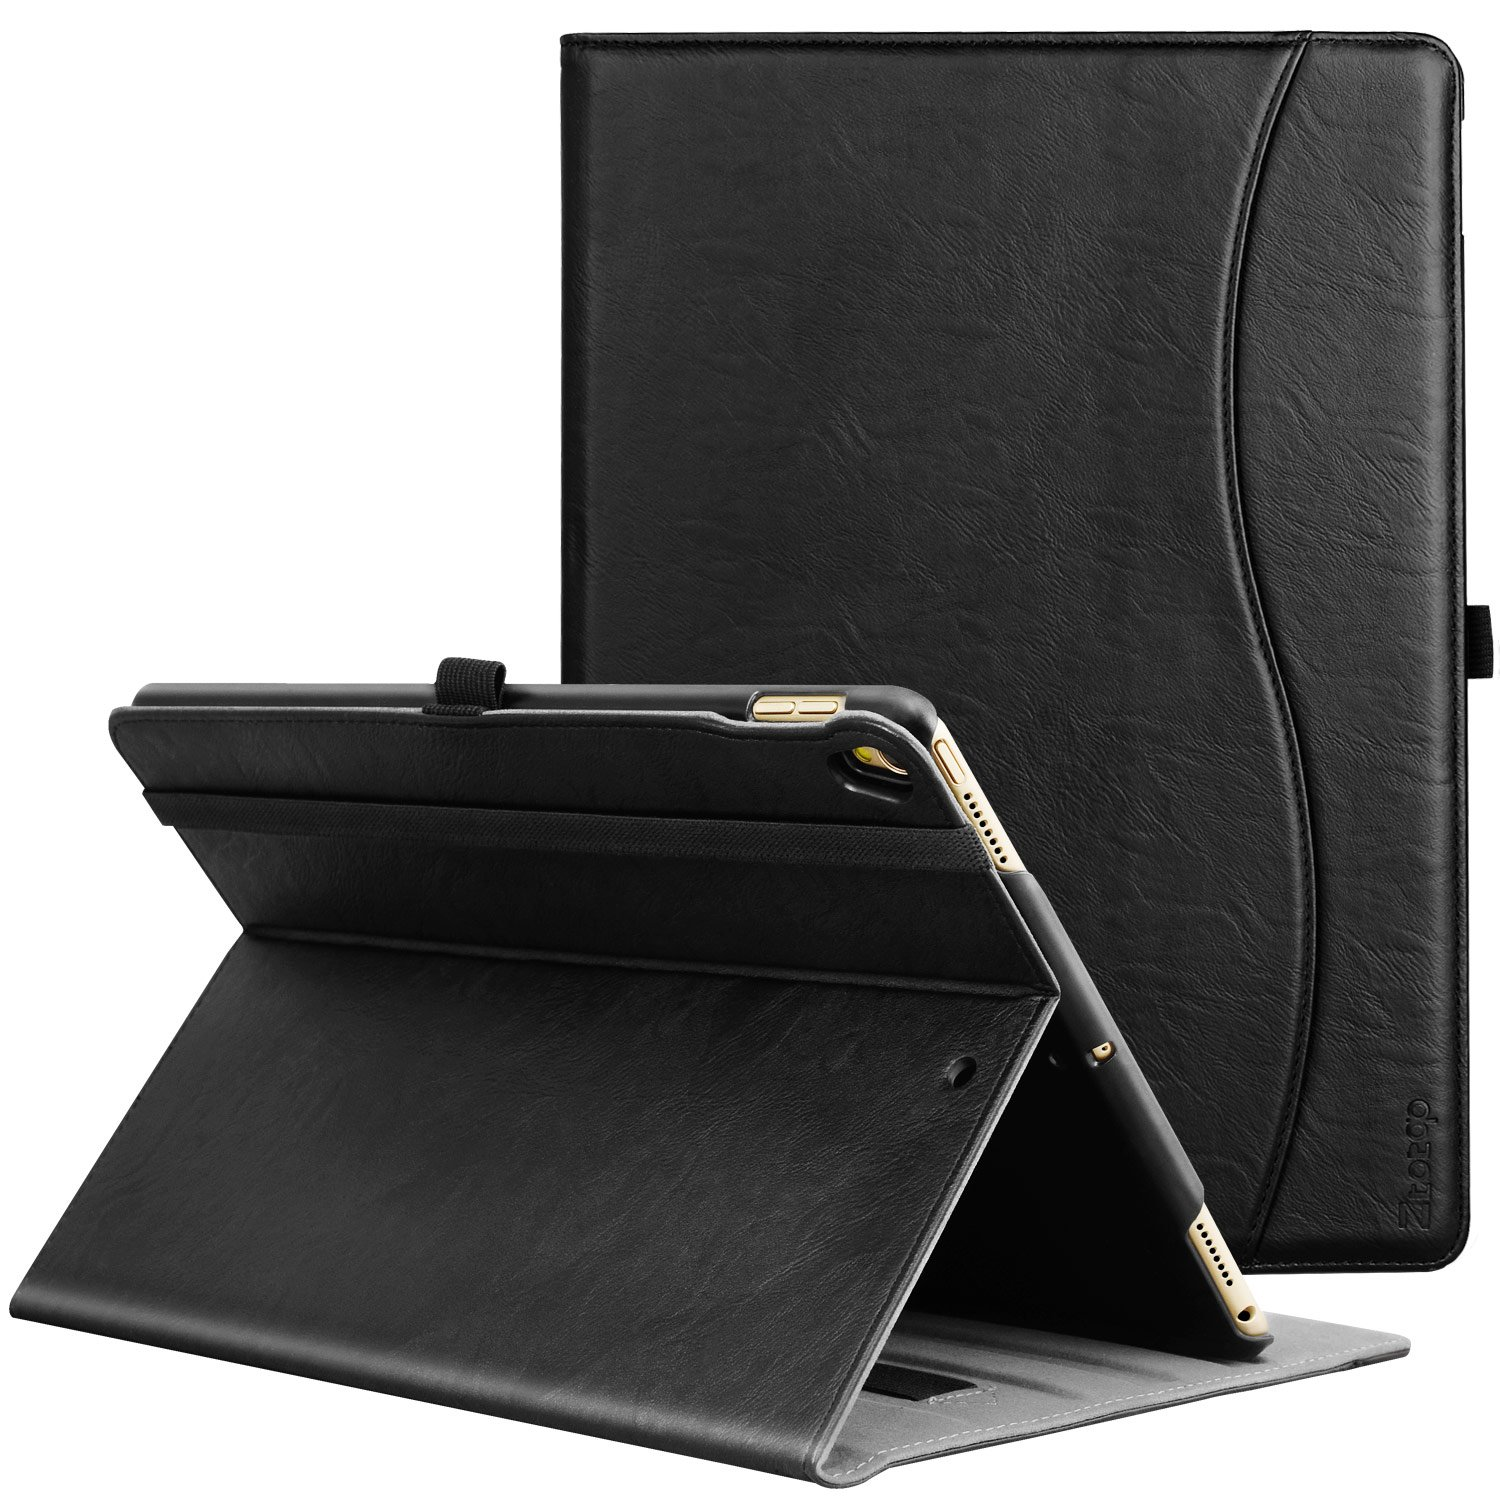 IPad Pro 10.5 Inch 2017 Case, Ztotop Premium Leather Business Slim Folding Stand Folio Cover for New Apple Tablet with Auto Wake / Sleep and Document Card Slots, Multiple Viewing Angles,all black